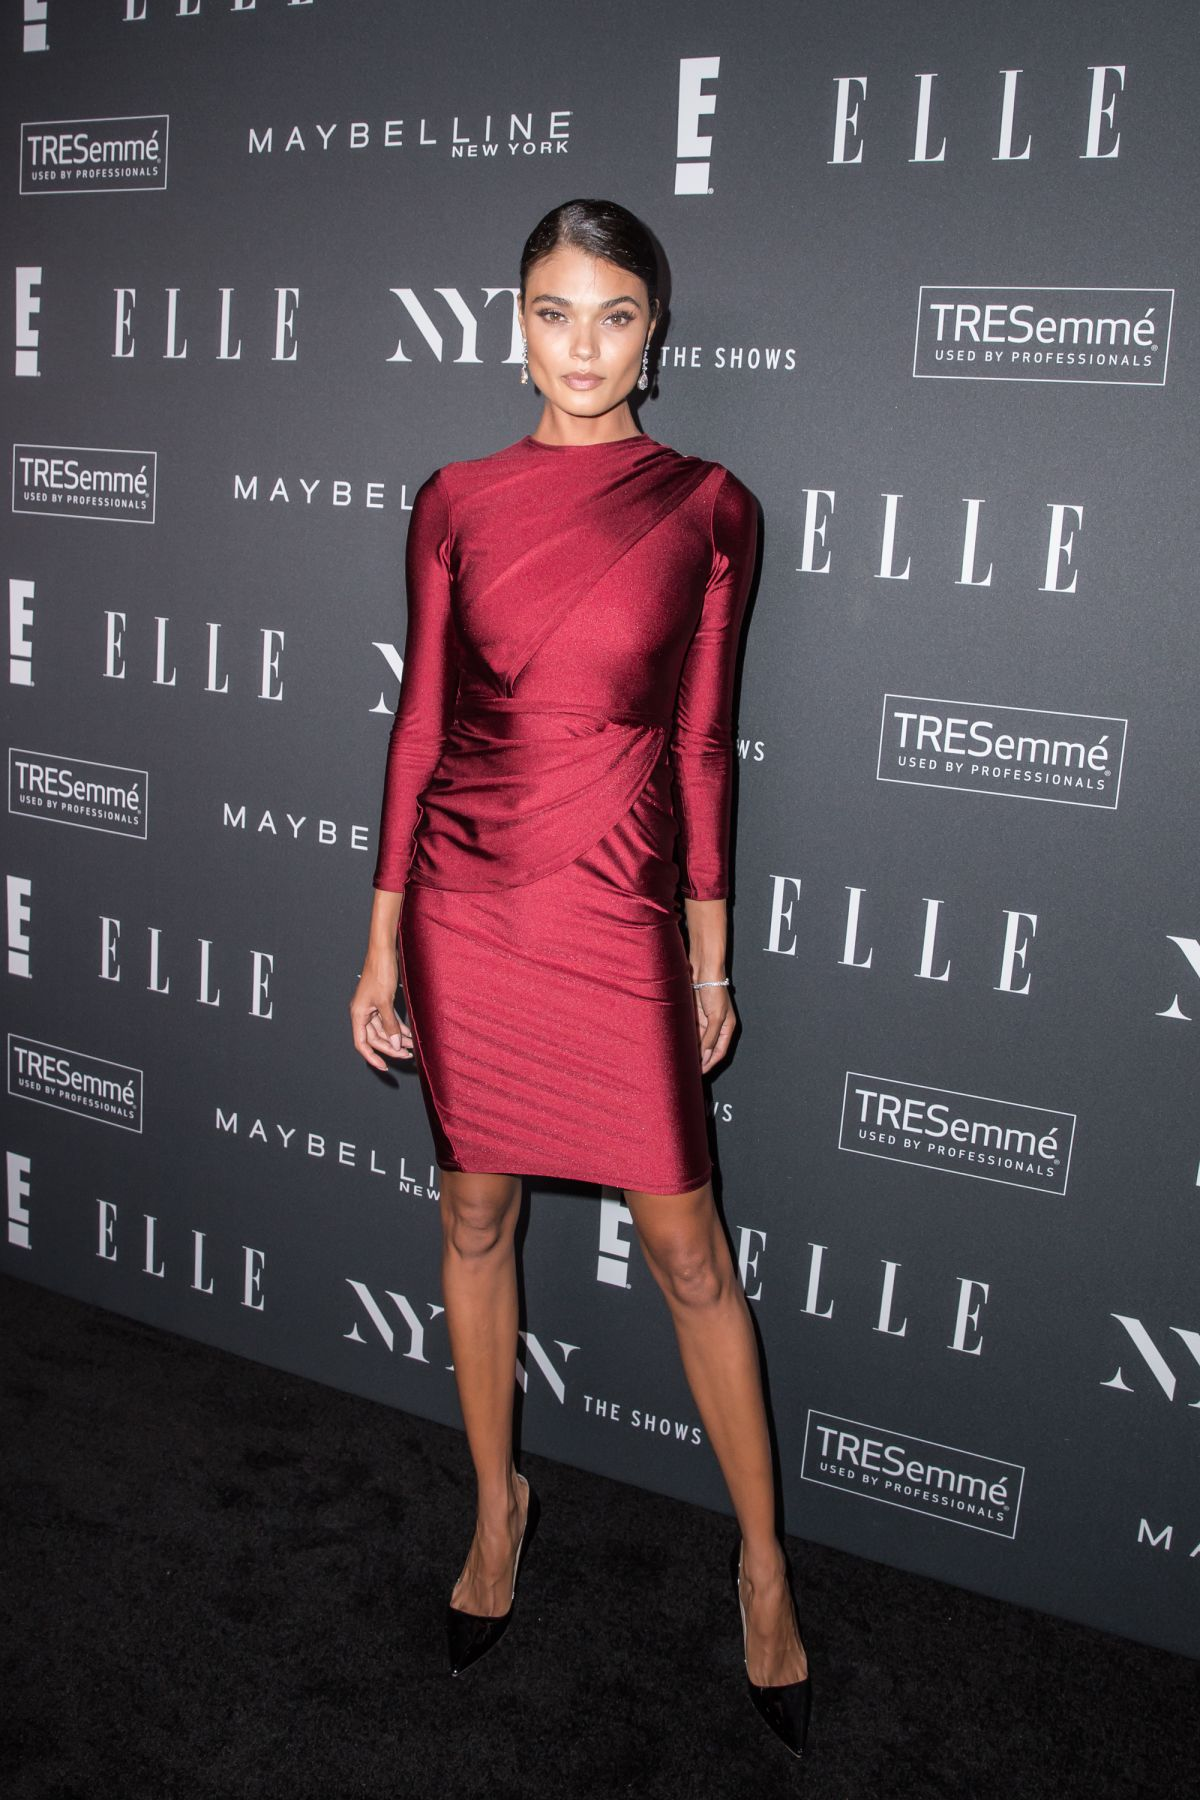 daniela-braga-at-e-elle-and-img-party-in-new-york-09-05-2018-1.jpg